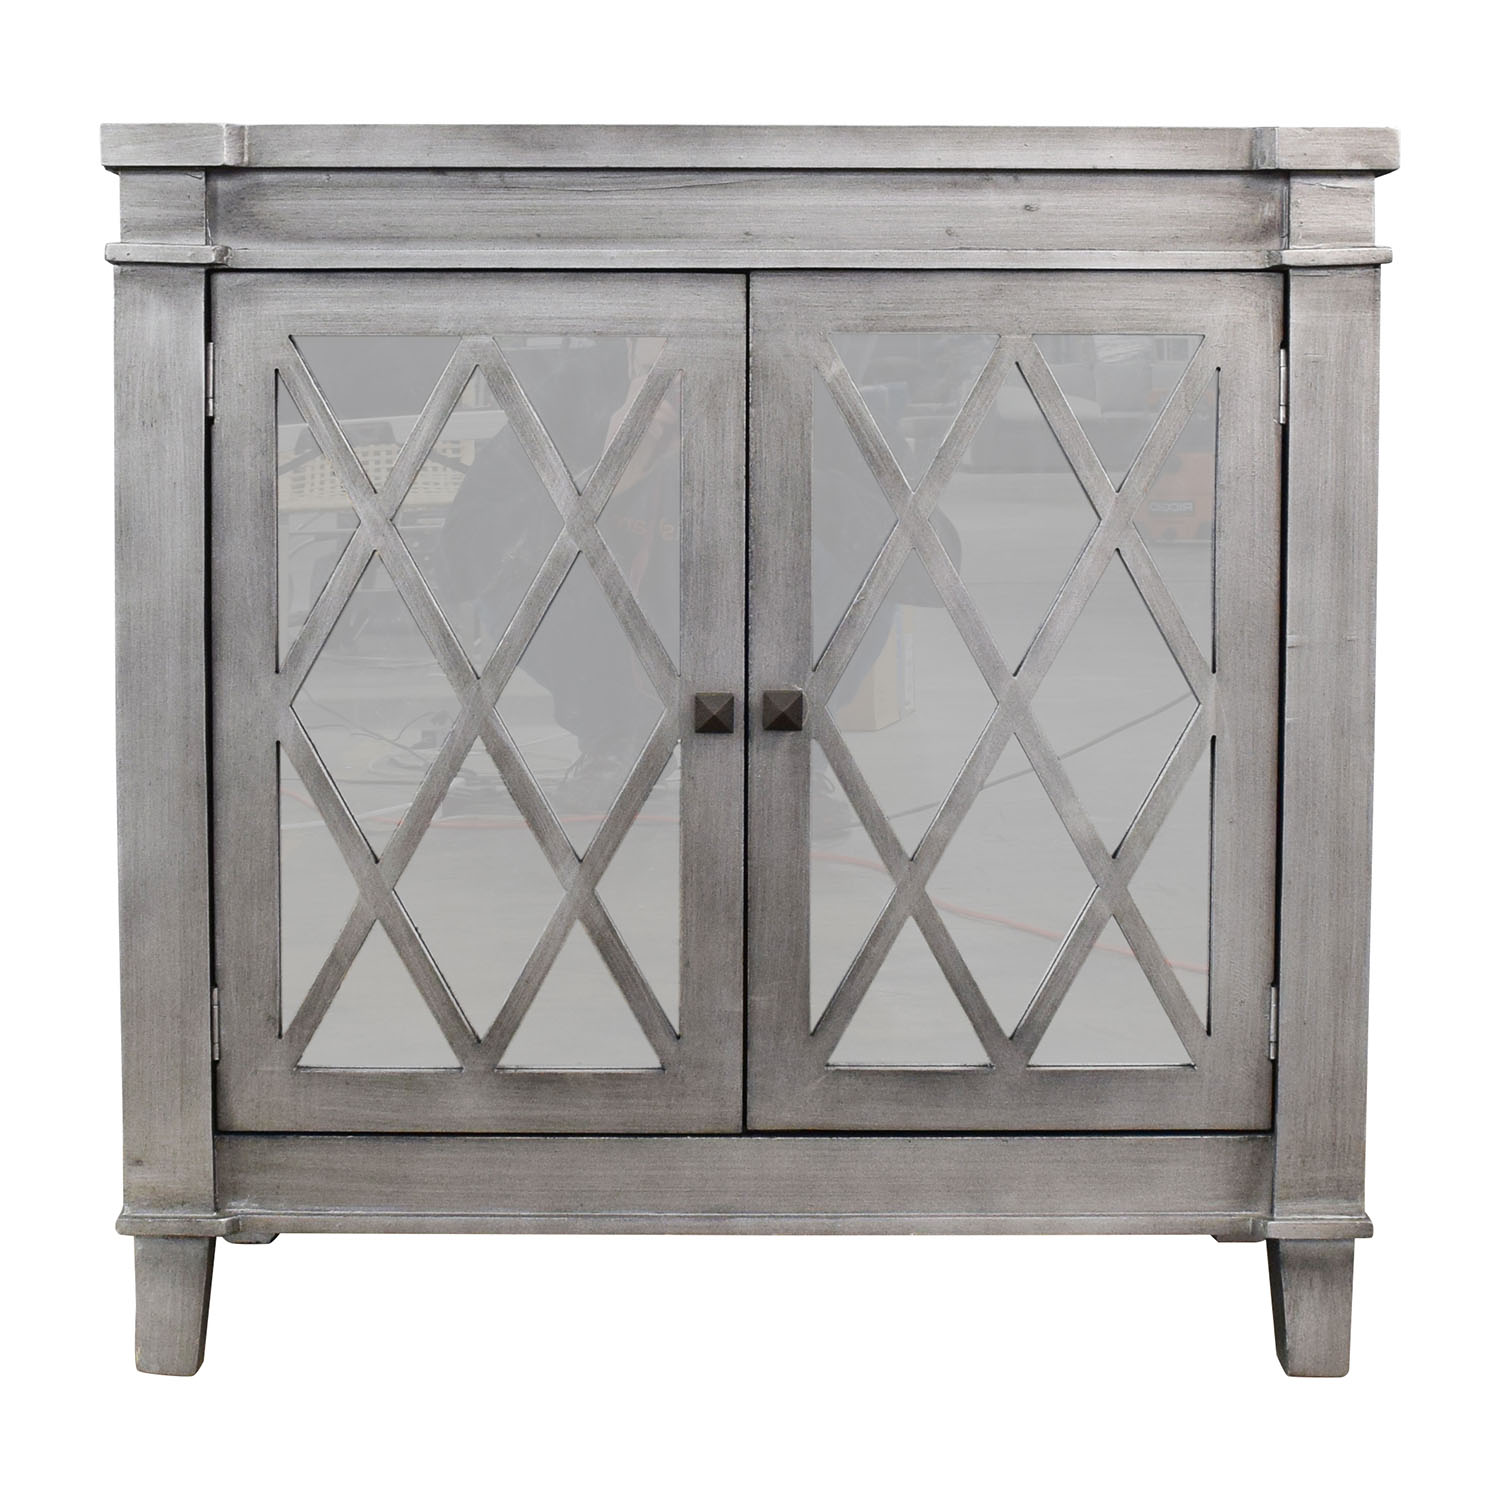 Mirrored Chest with Silver Trim dimensions